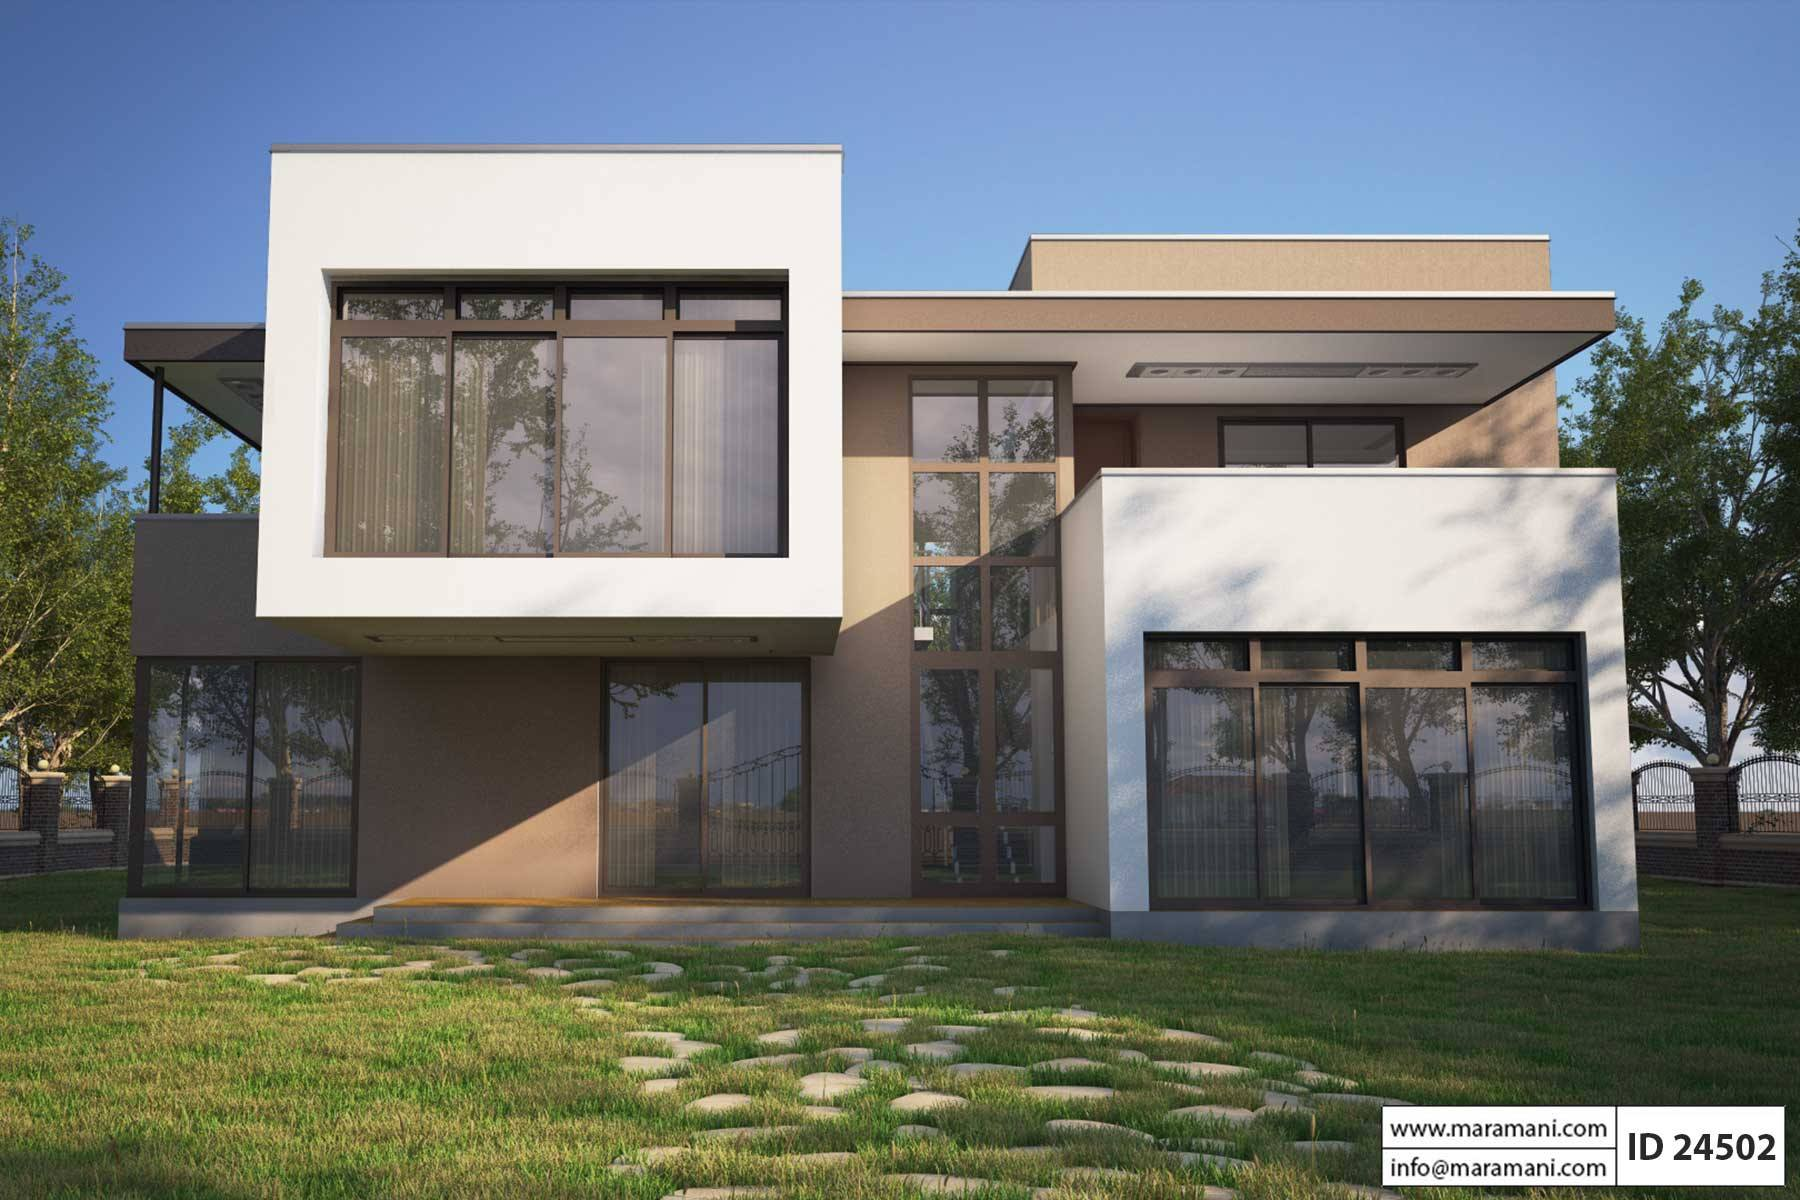 4 Bedroom House Plans & Designs for Africa - House Plans by Maramani